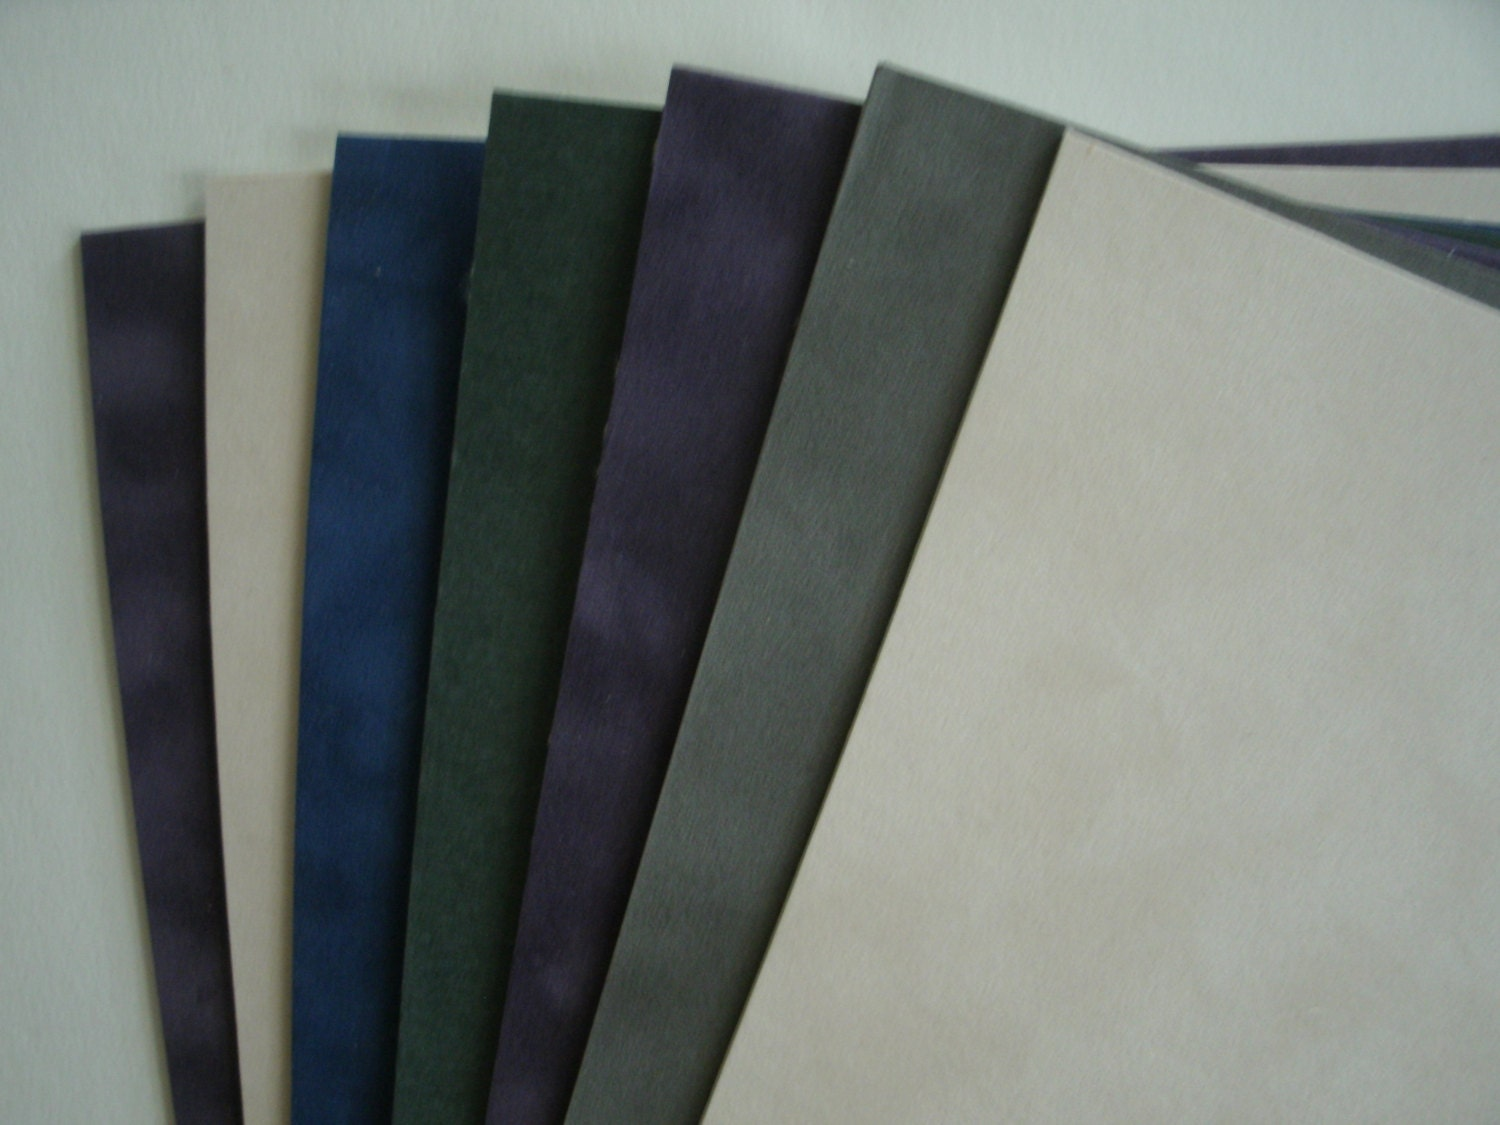 7 11 X 14 Suede Picture Frame Mat Board Blank Uncut By